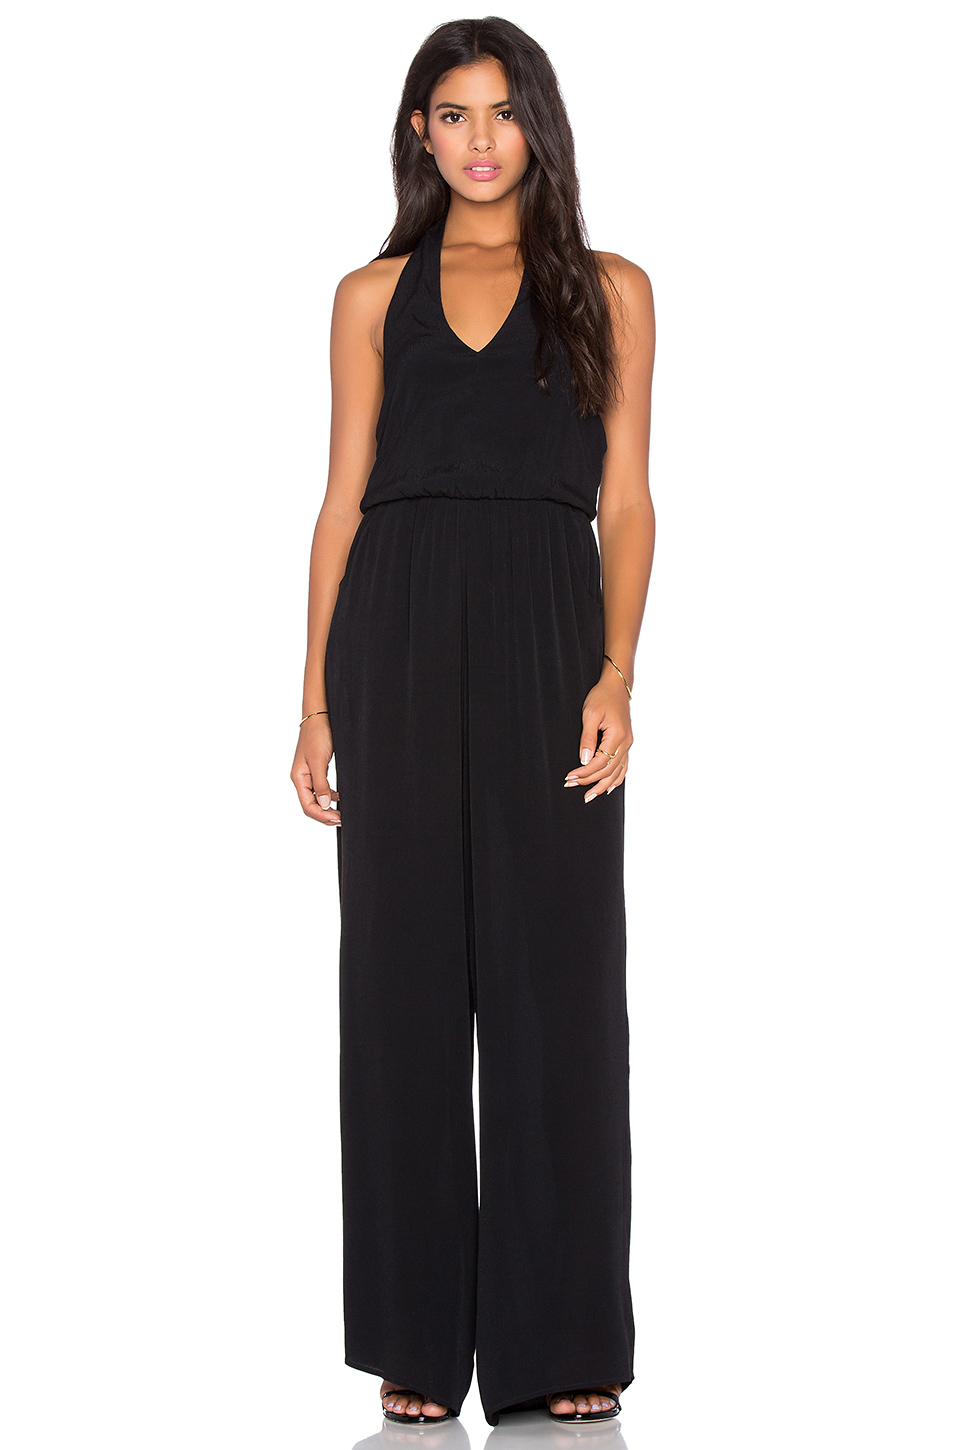 Shop our Collection of Women's Jumpsuits & Rompers at truedfil3gz.gq for the Latest Designer Brands & Styles. FREE SHIPPING AVAILABLE!